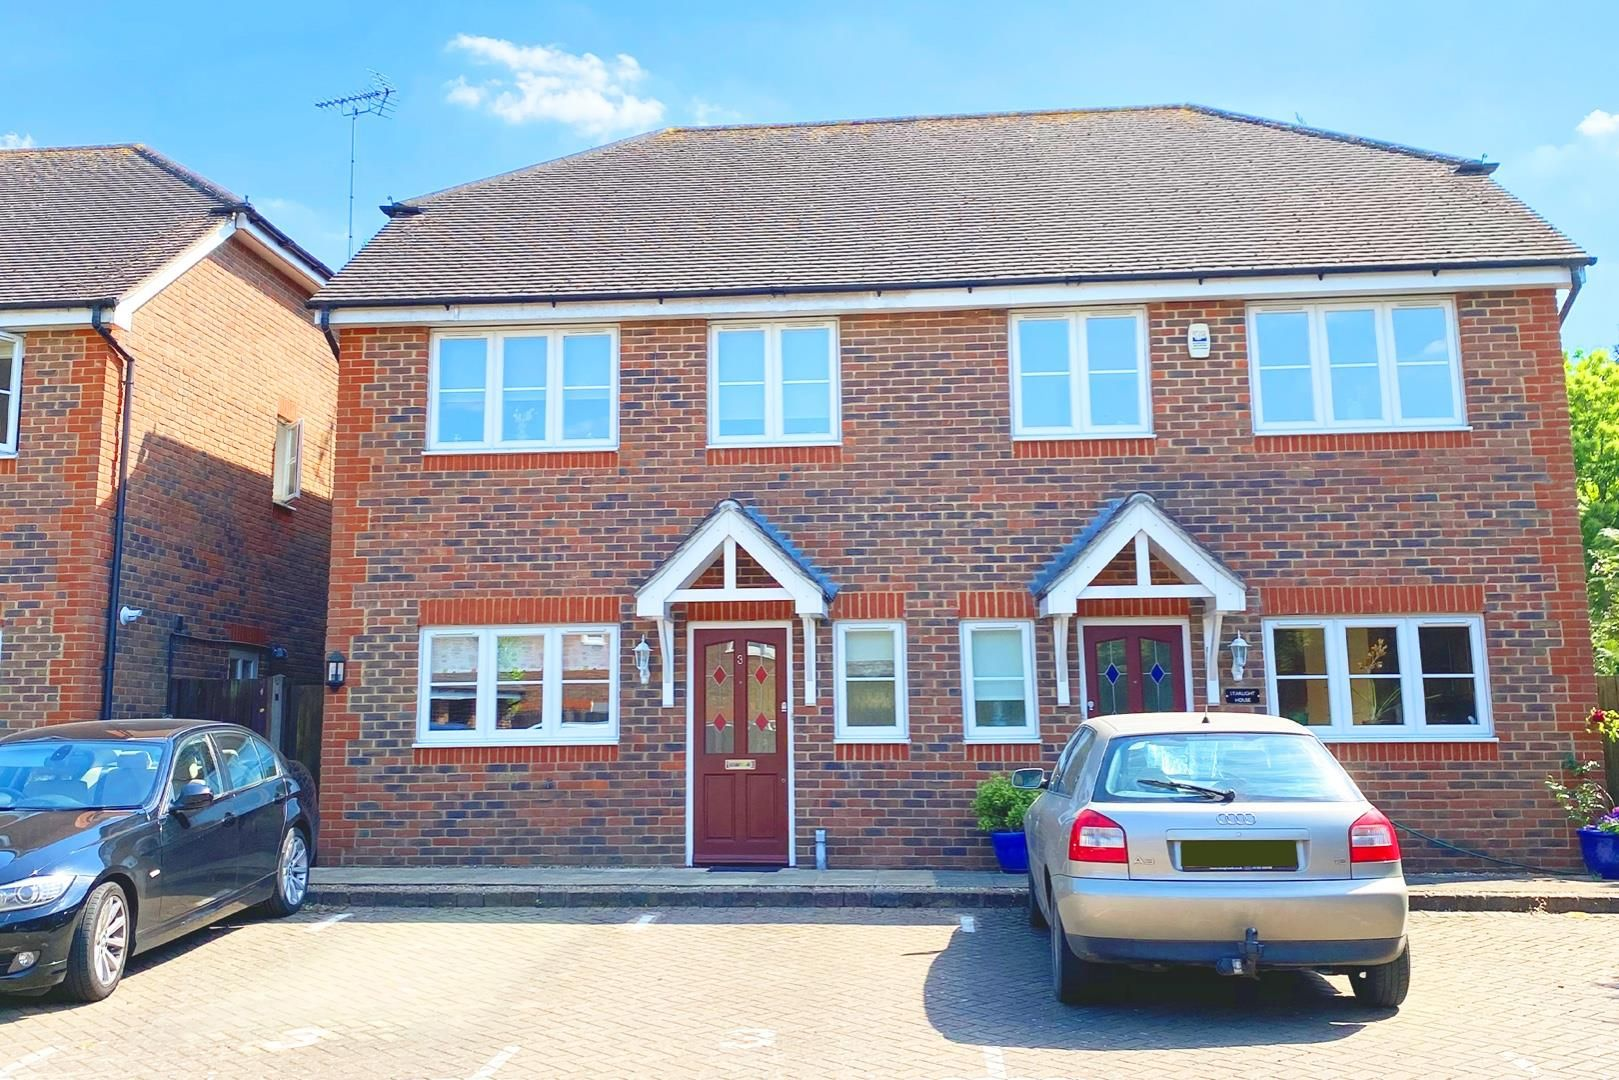 3 bed semi-detached for sale in Warfield - Property Image 1